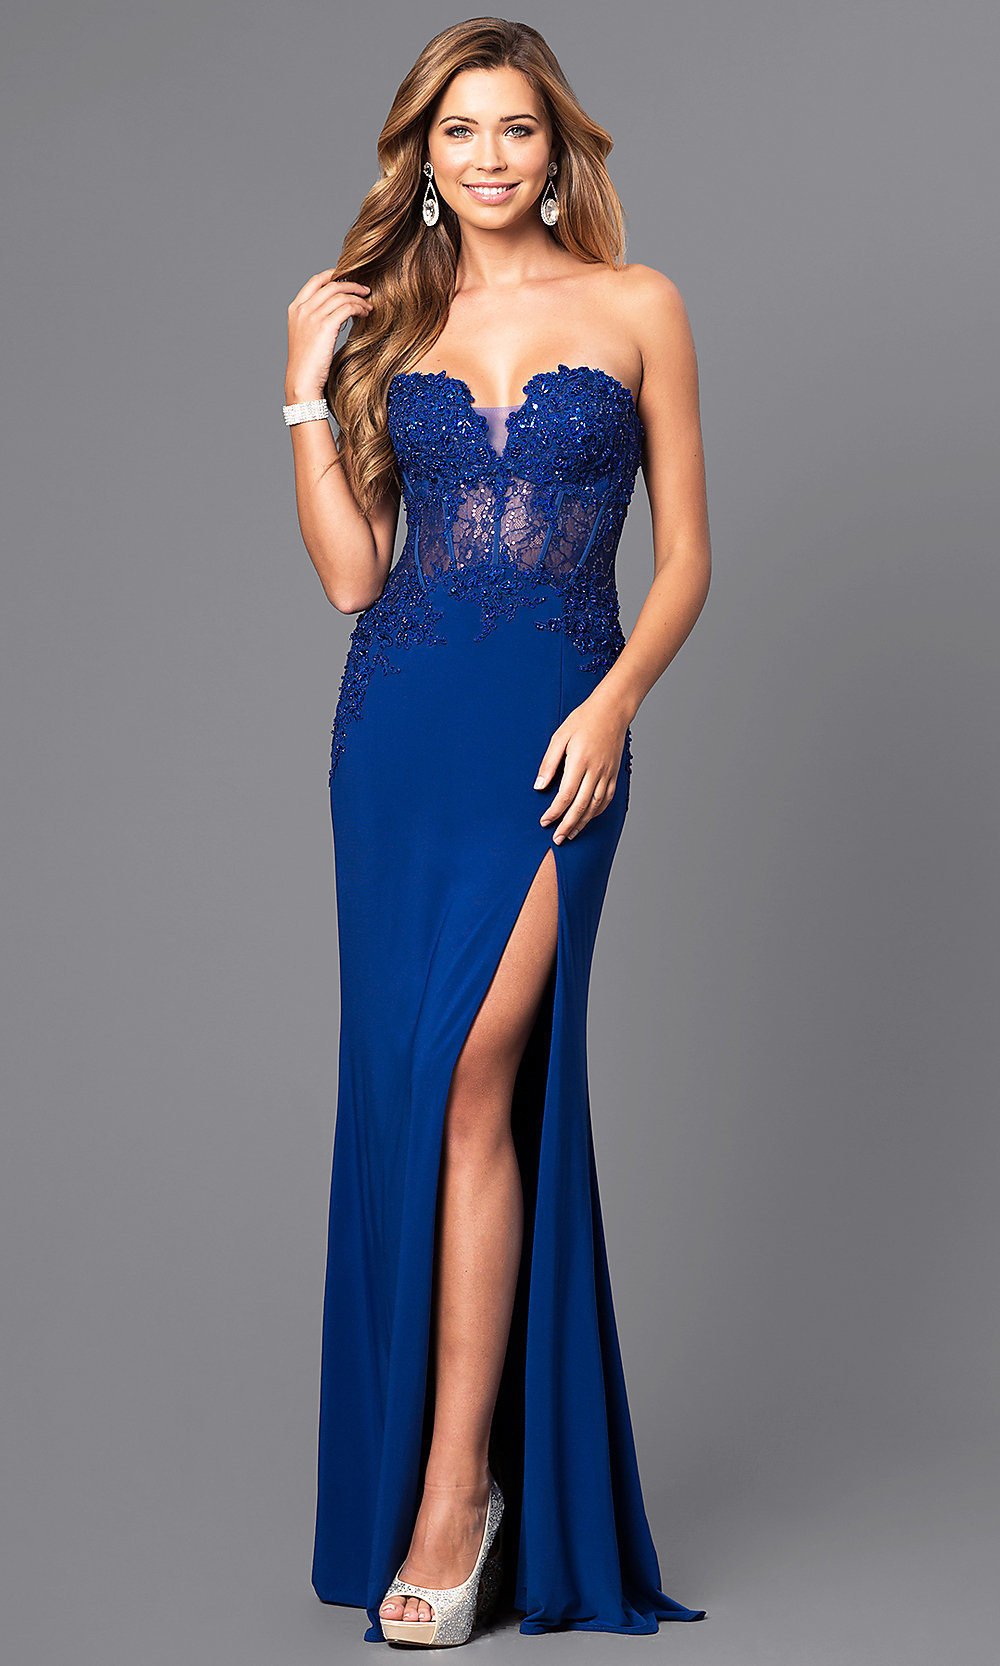 Long Strapless Illusion-Bodice Prom Dress - PromGirl